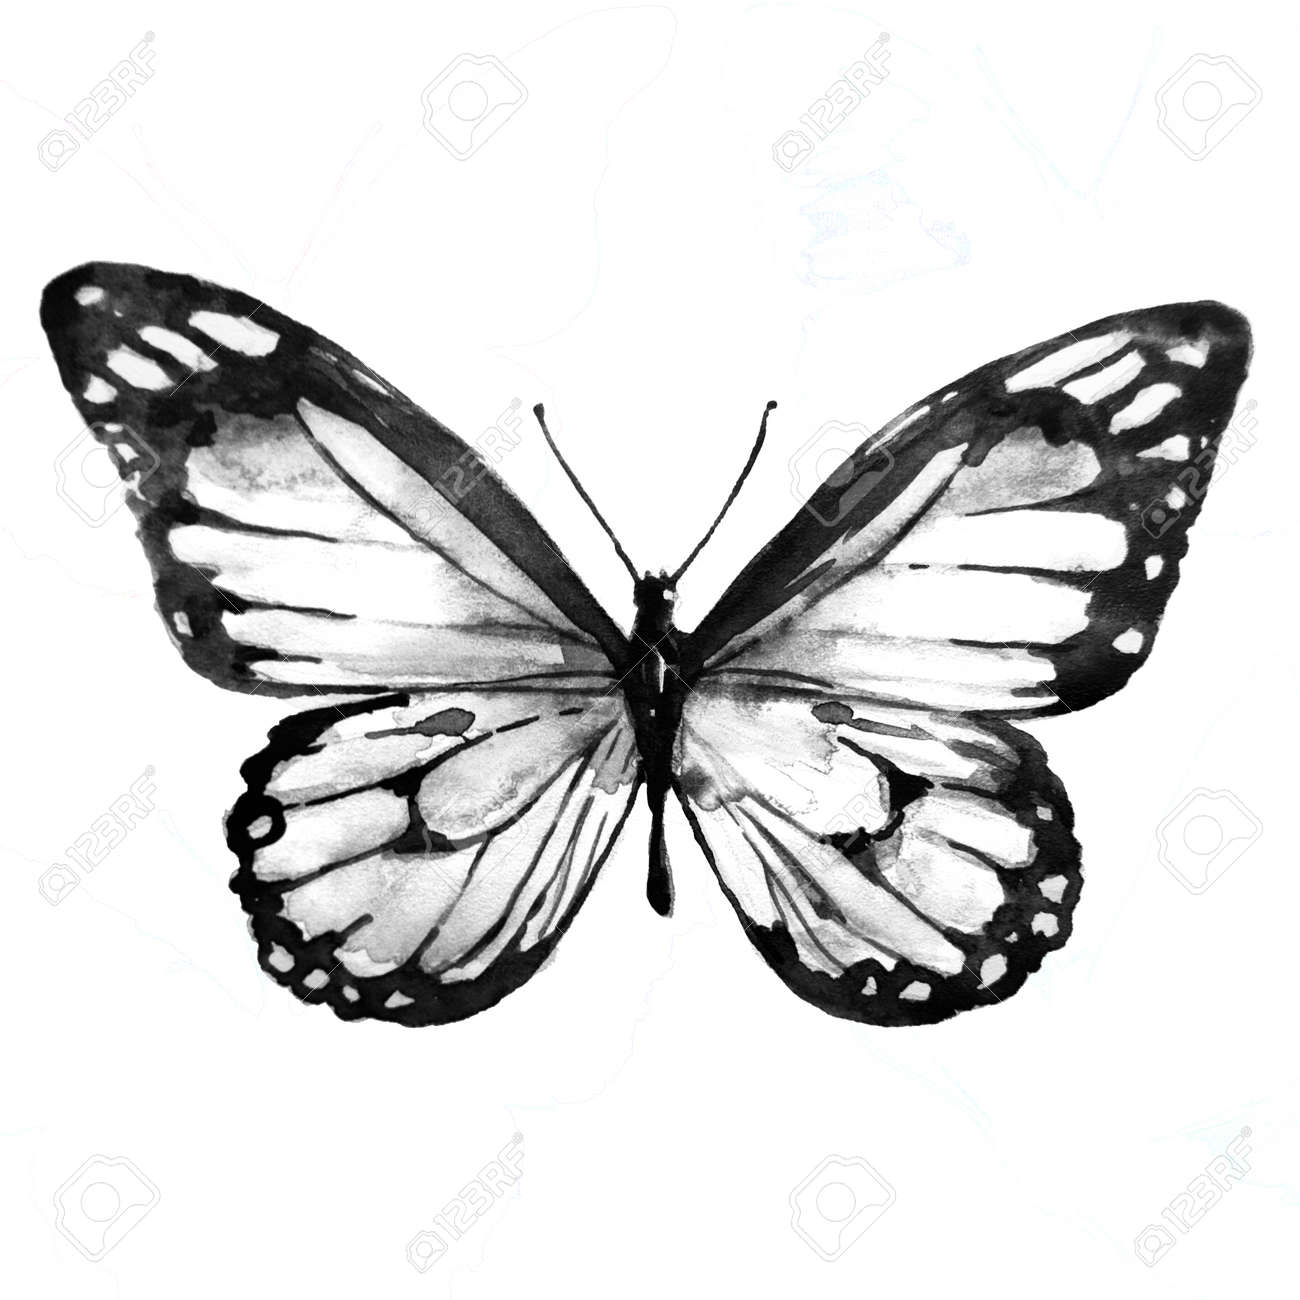 Black butterflywatercolor isolated on a white